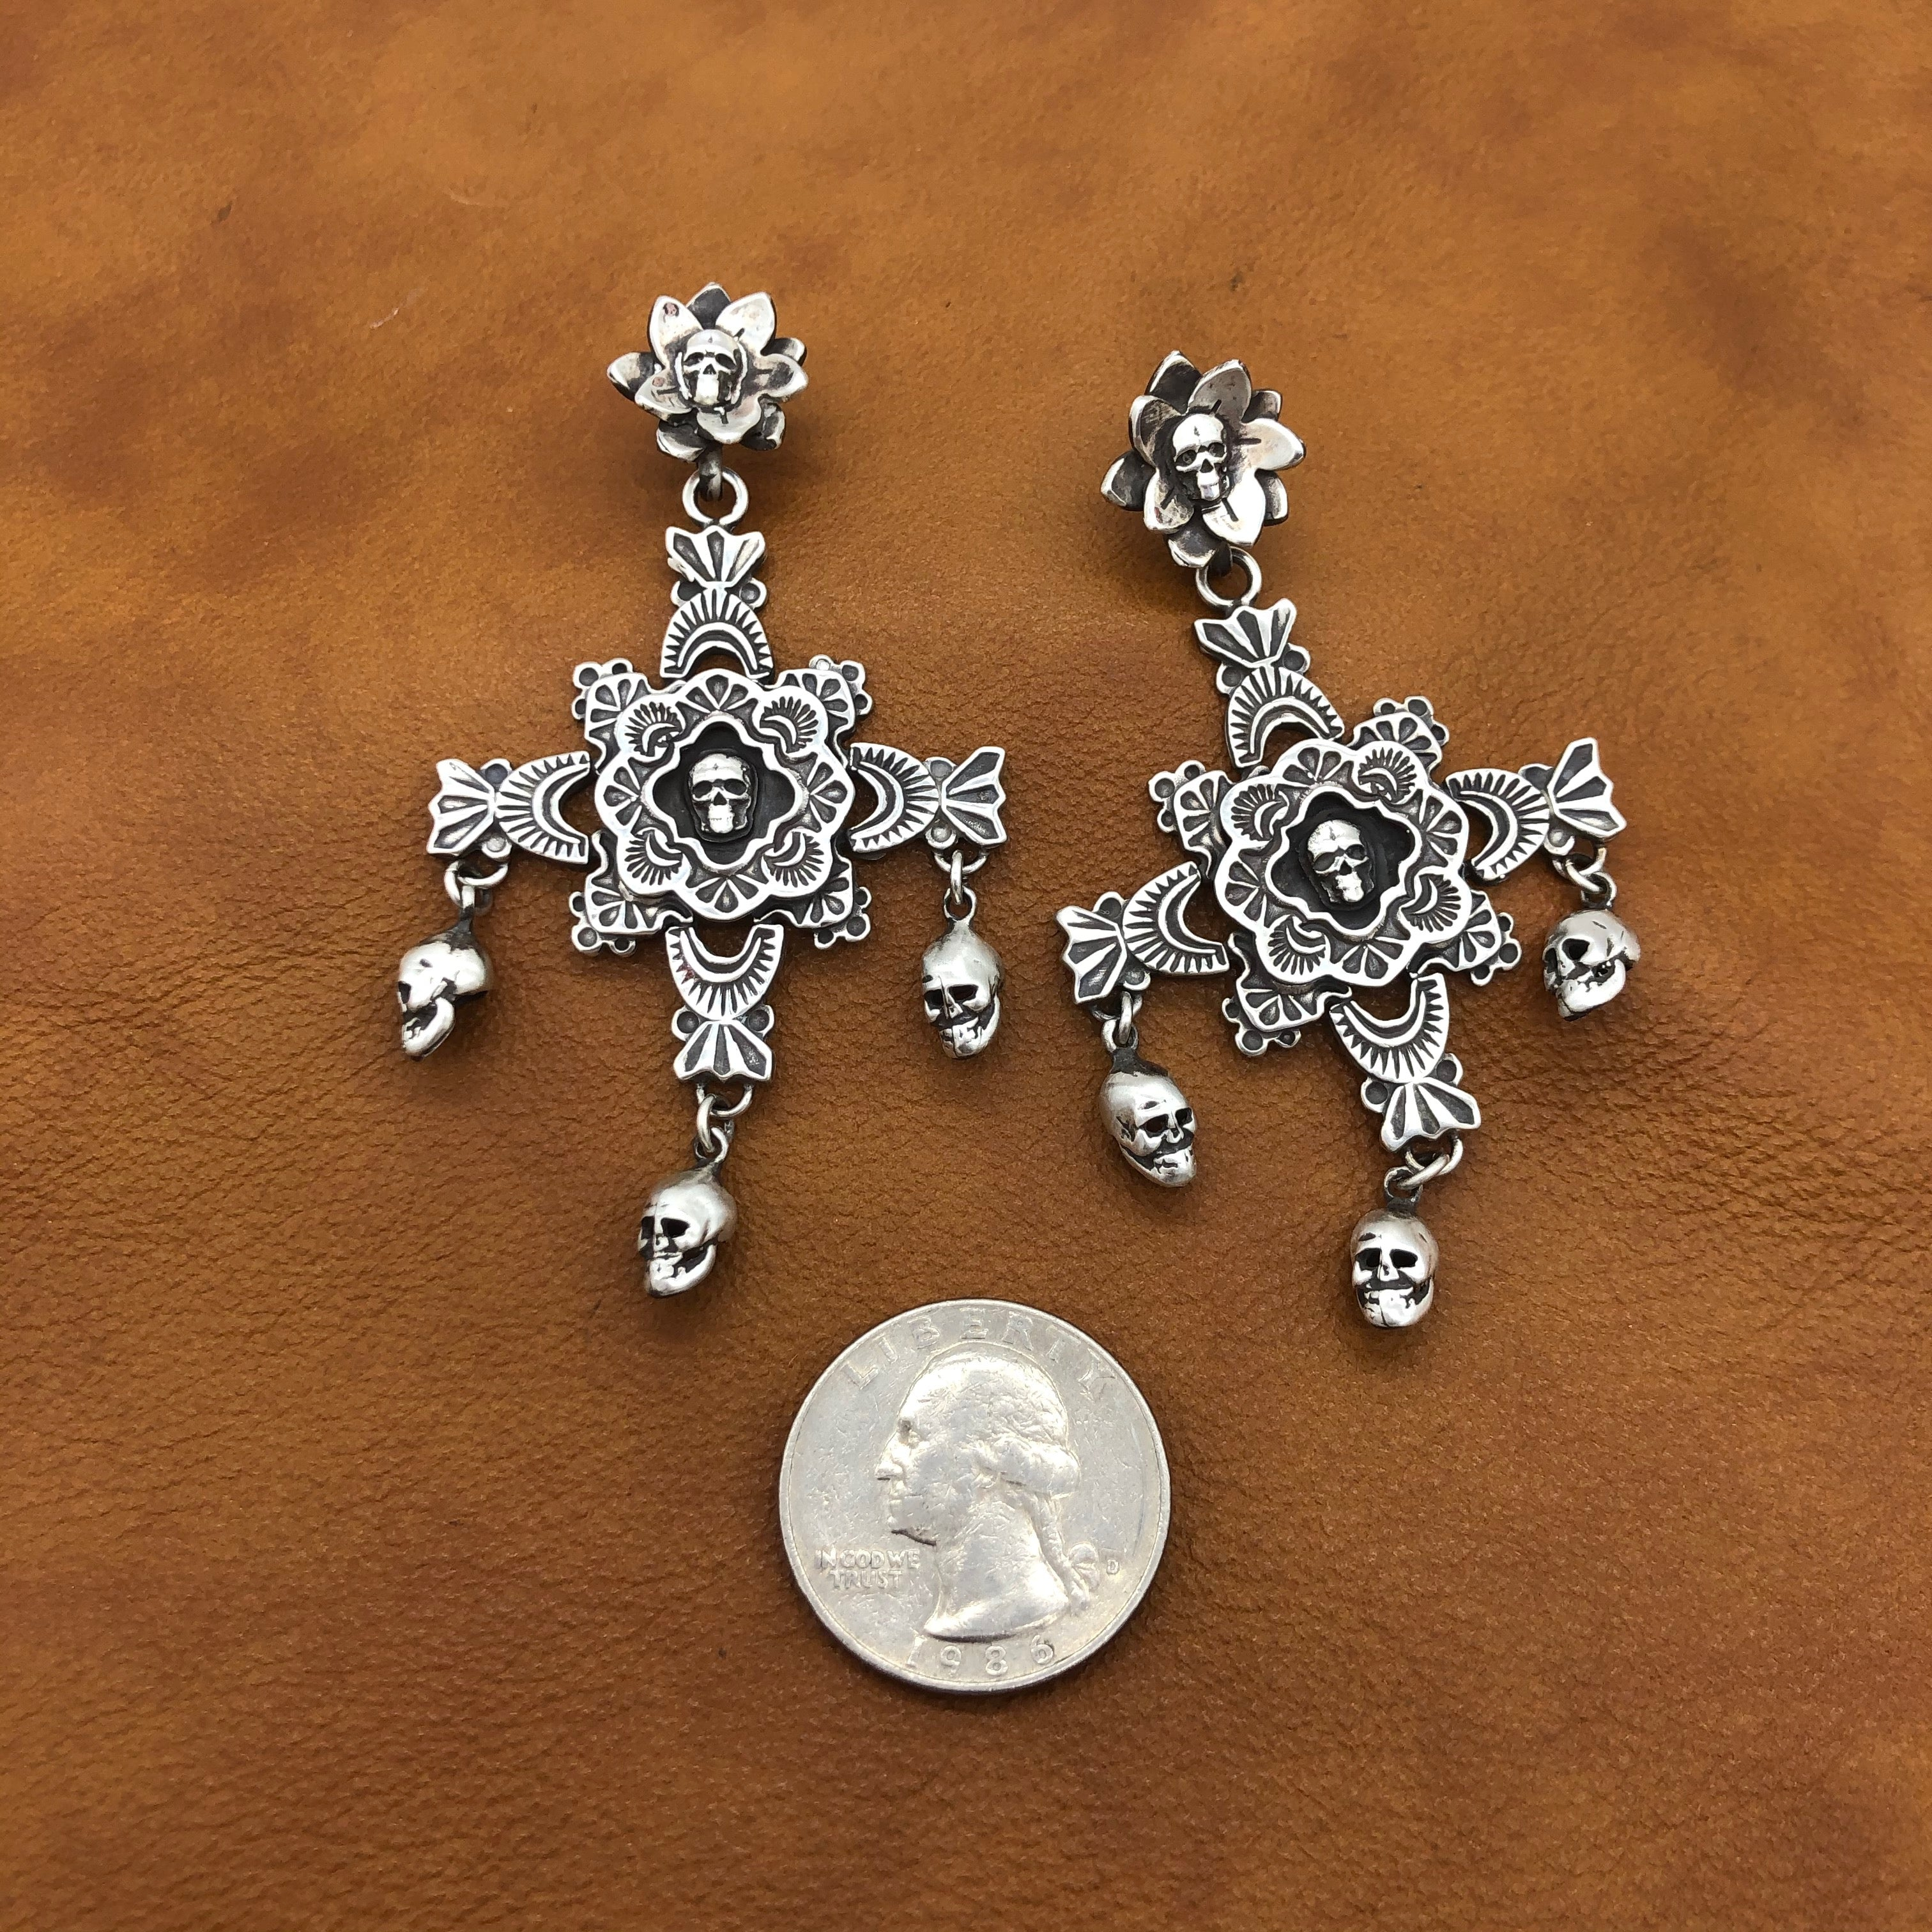 CYBER SALE E69 Puerto de Luna with Skulls Earrings